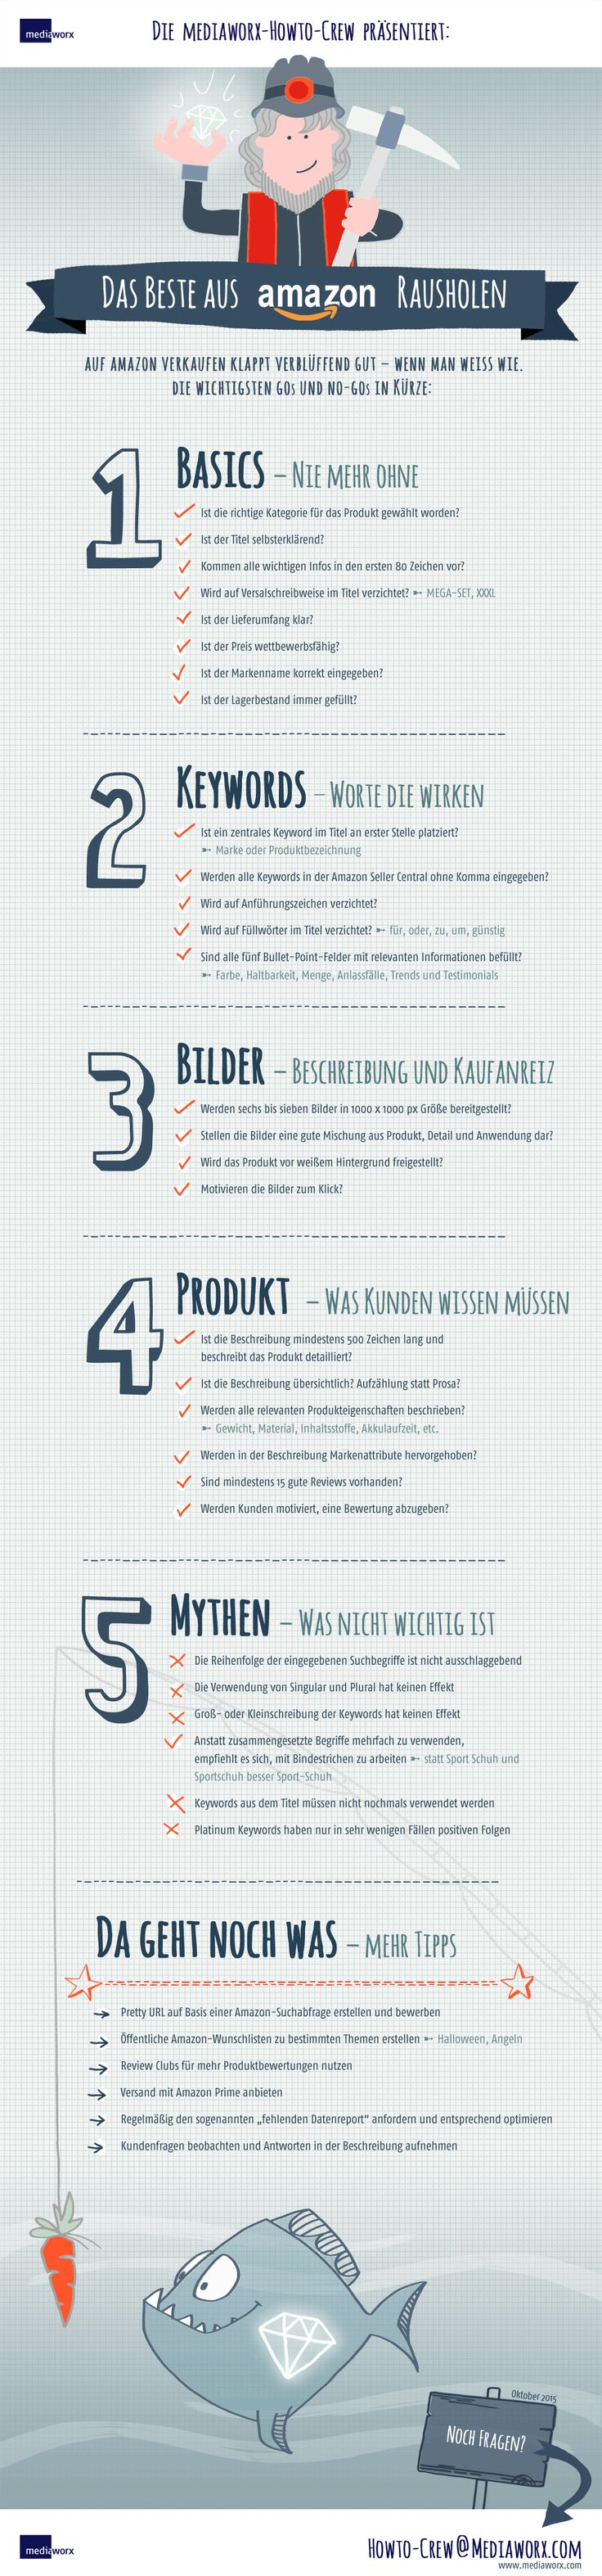 15 best Amazon images on Pinterest   Info graphics, Infographic and ...